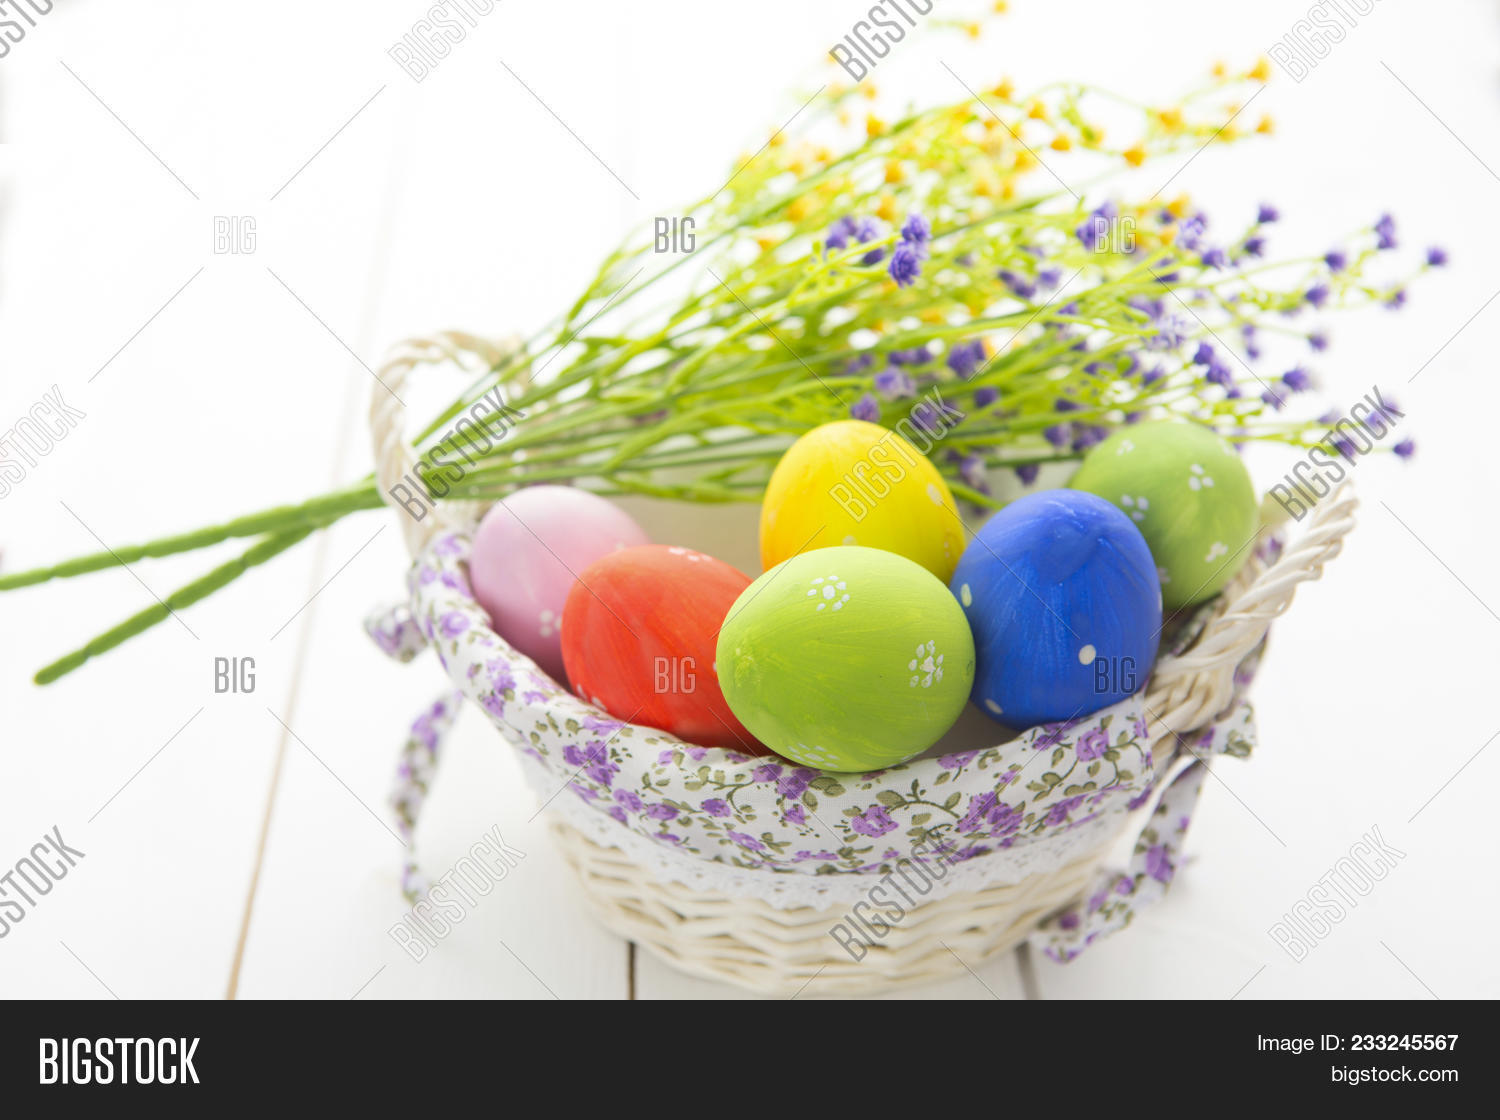 Beautiful flowers image photo free trial bigstock beautiful flowers and easter eggs basket easter eggs in basket on wooden surface izmirmasajfo